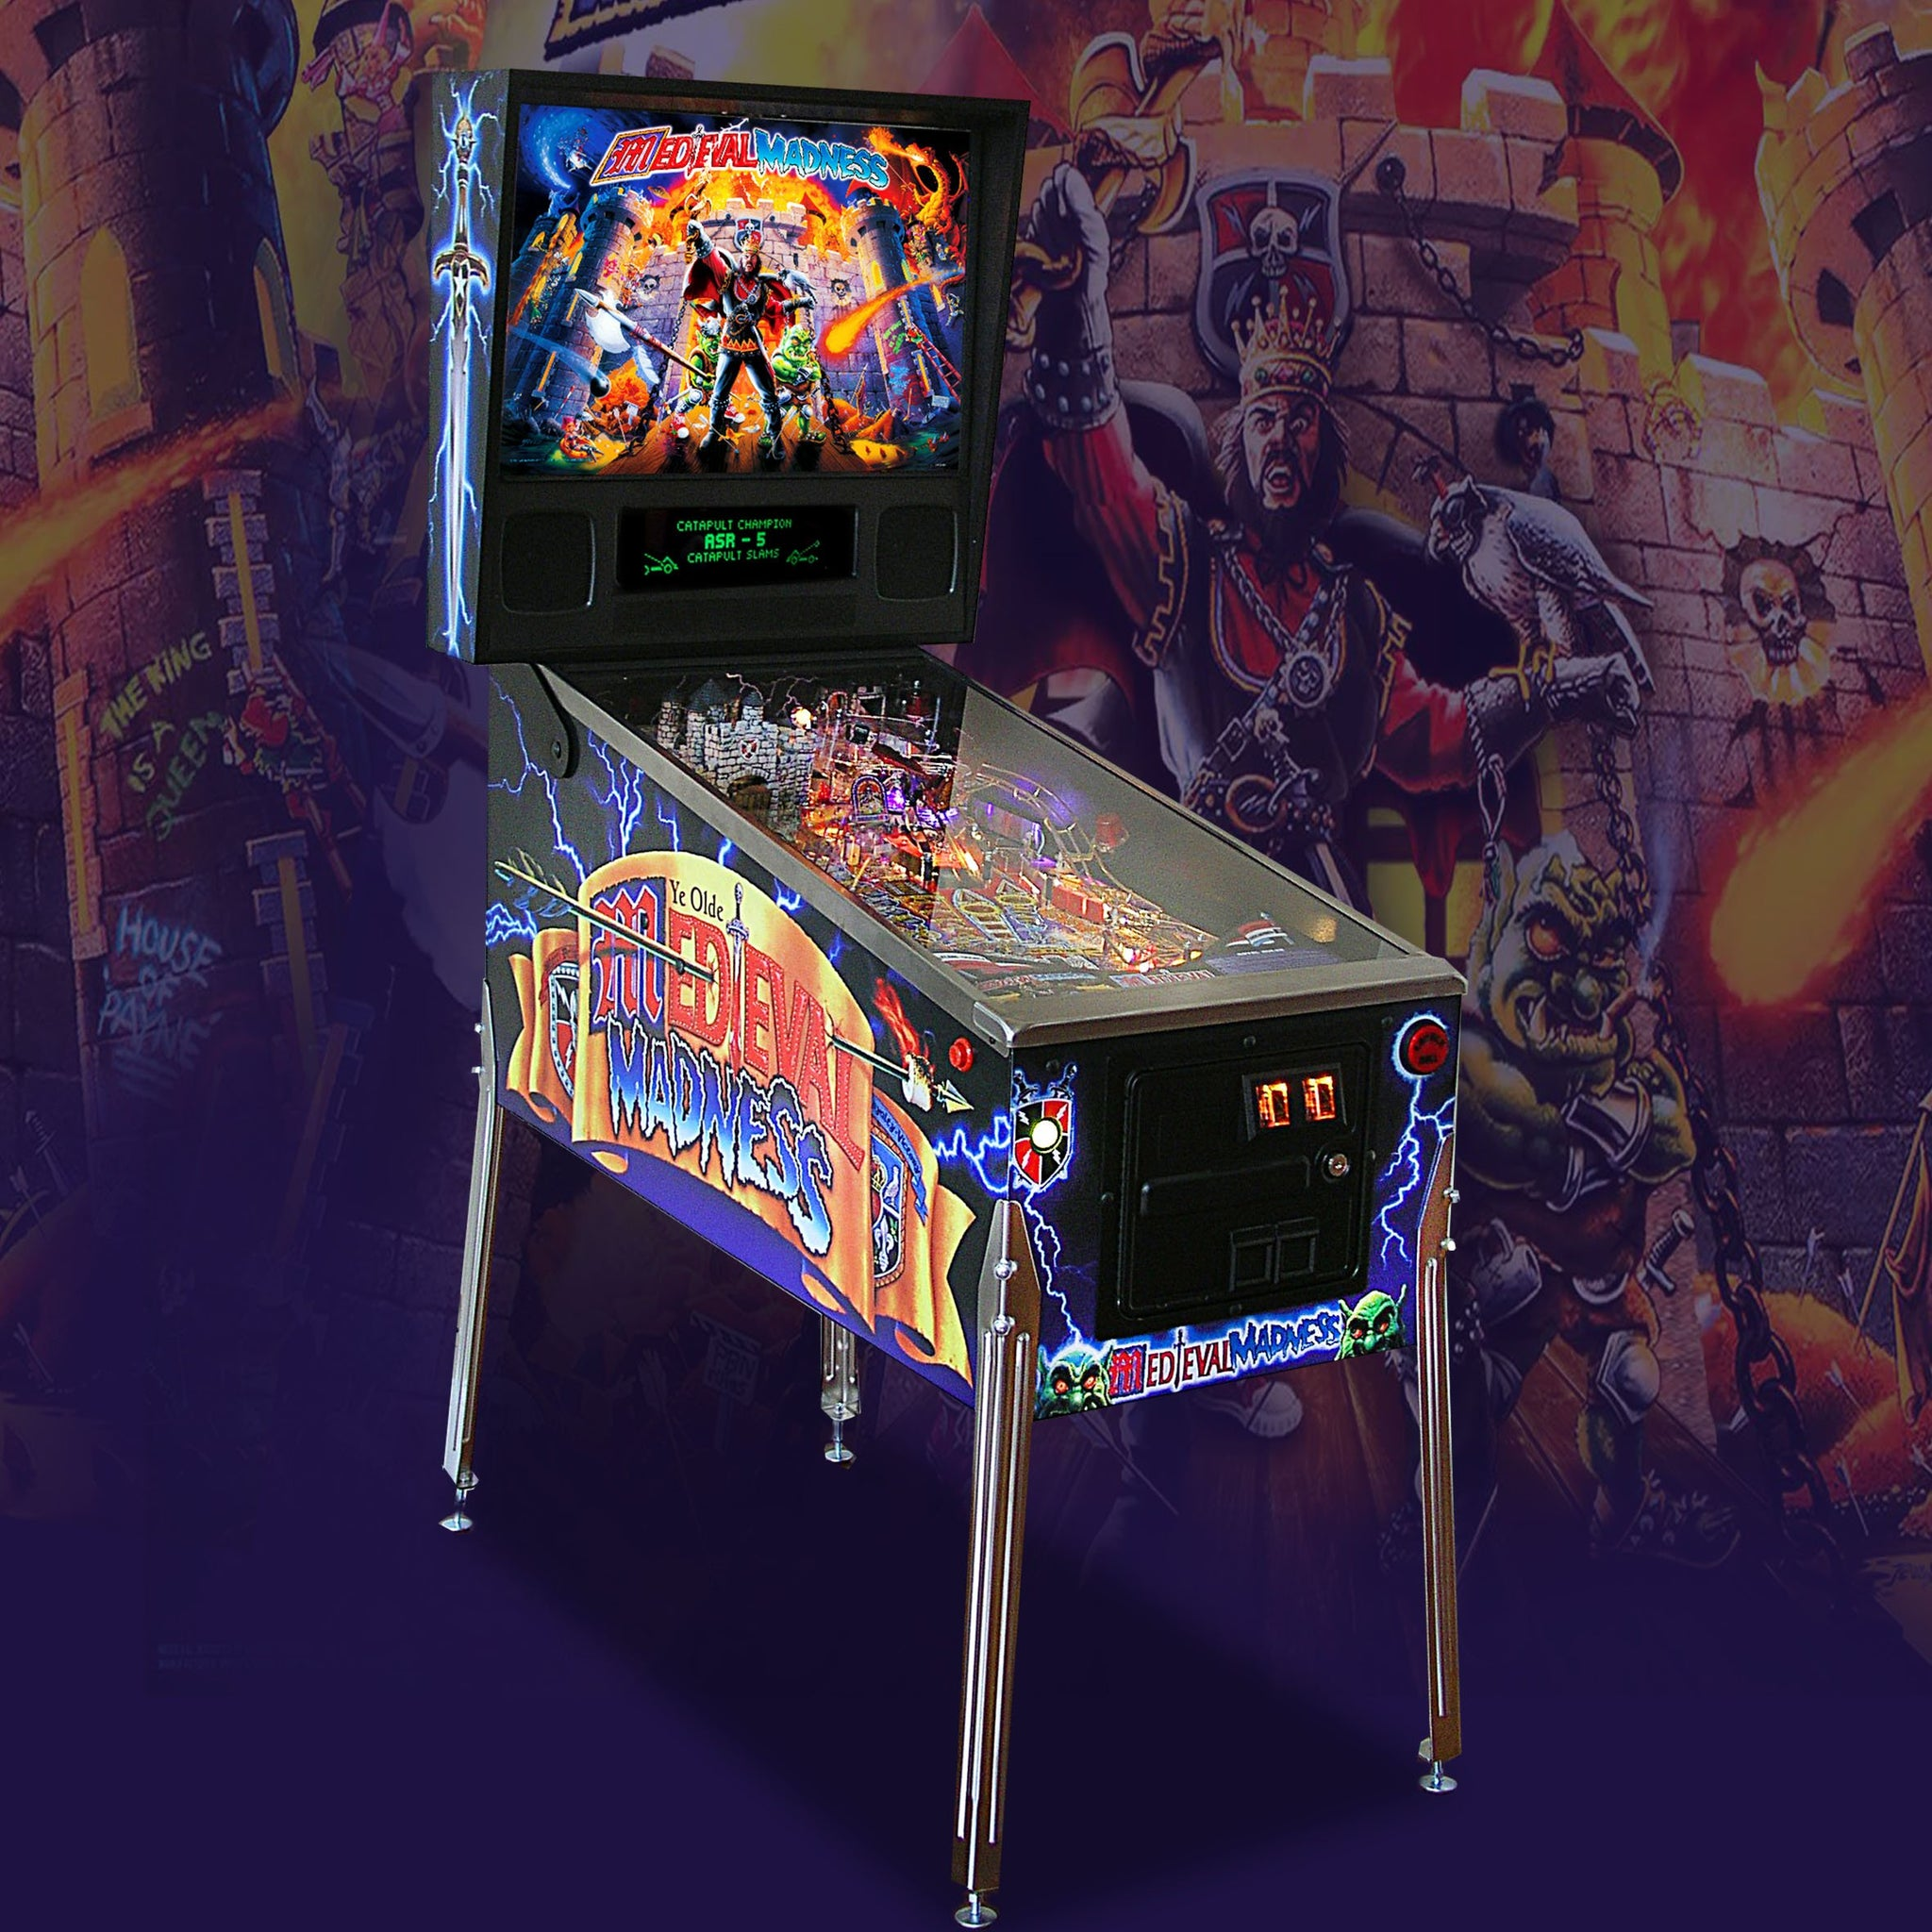 1997 Medieval Madness Pinball 'Coming Soon' by Williams